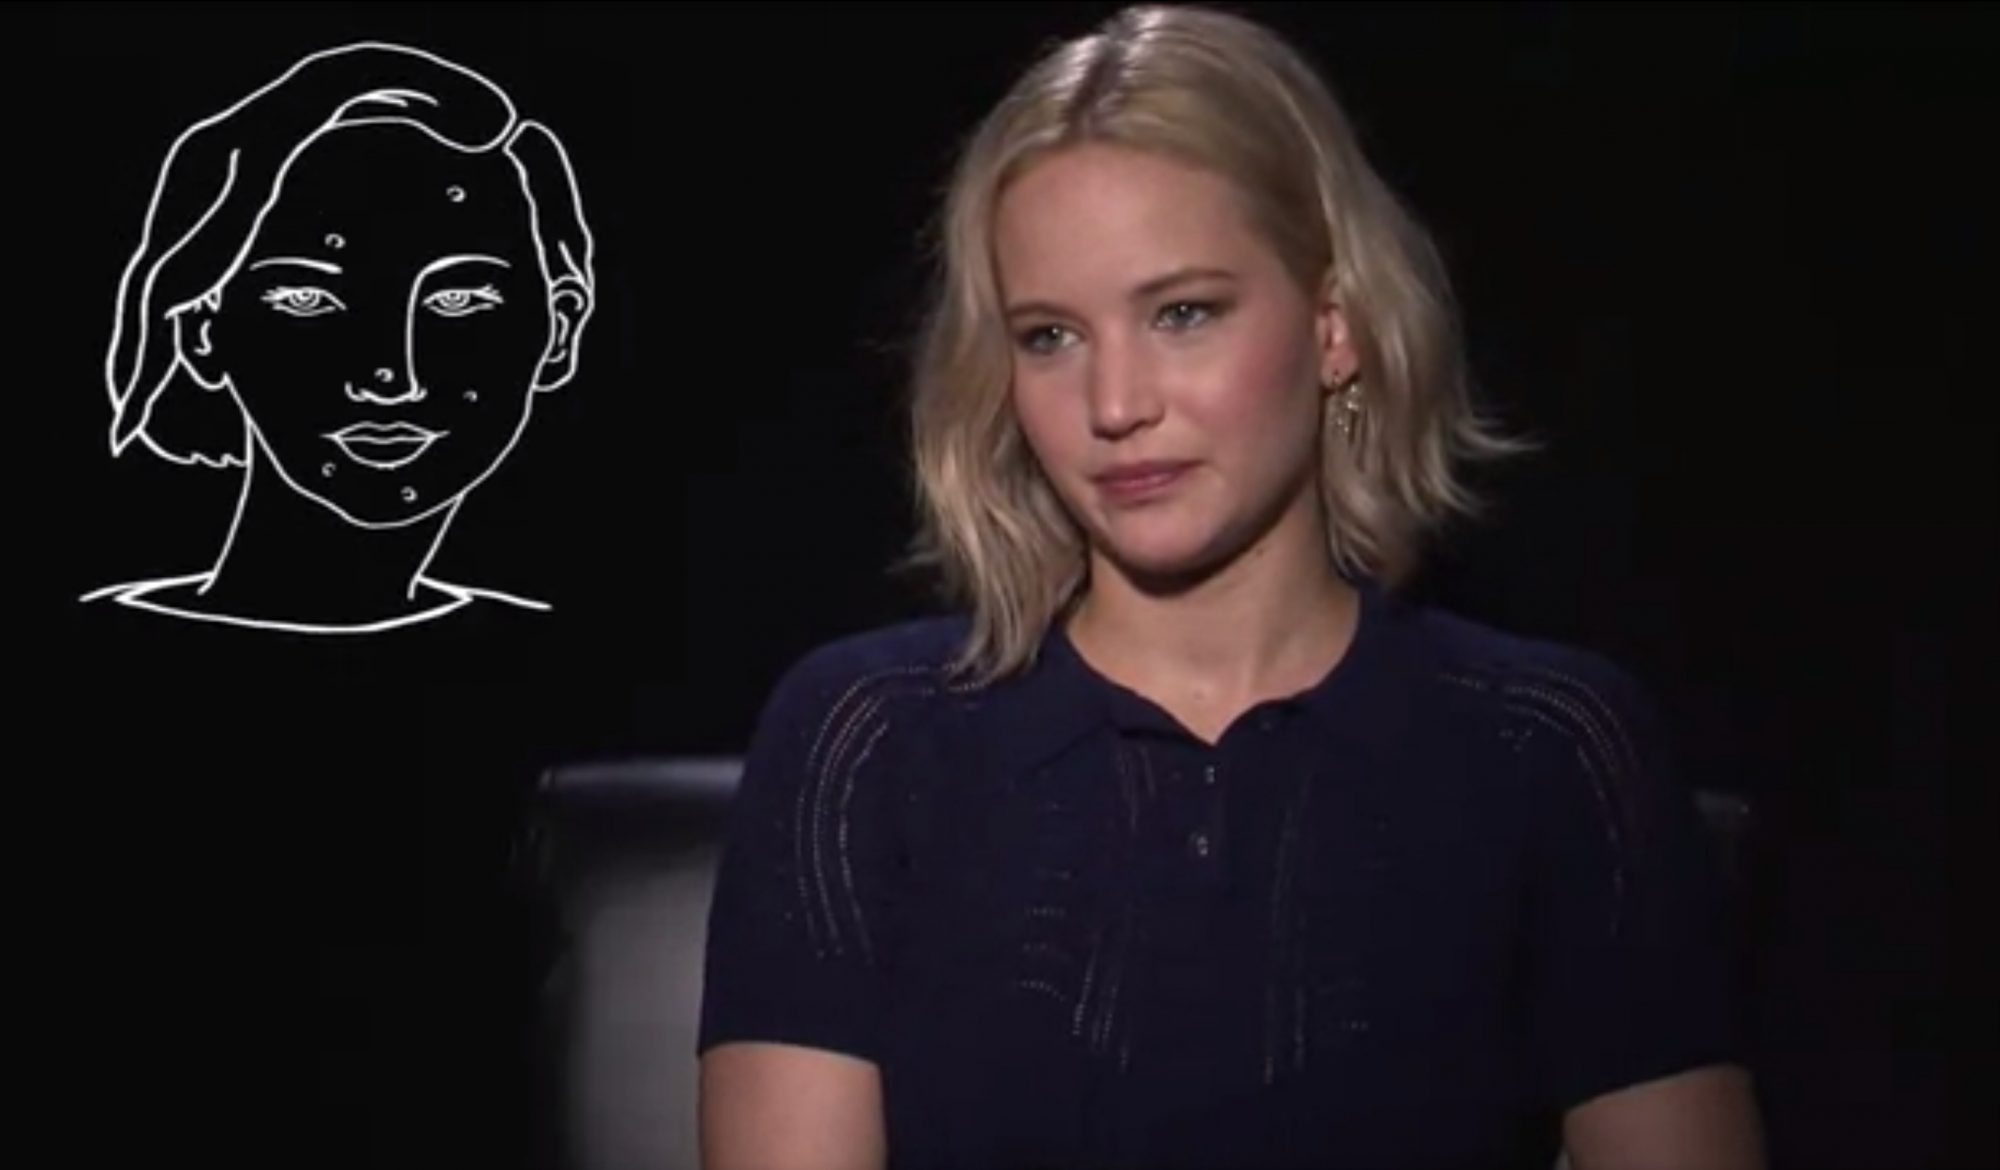 picture-of-jennifer-lawrence-glamour-video-zits-photo.jpg